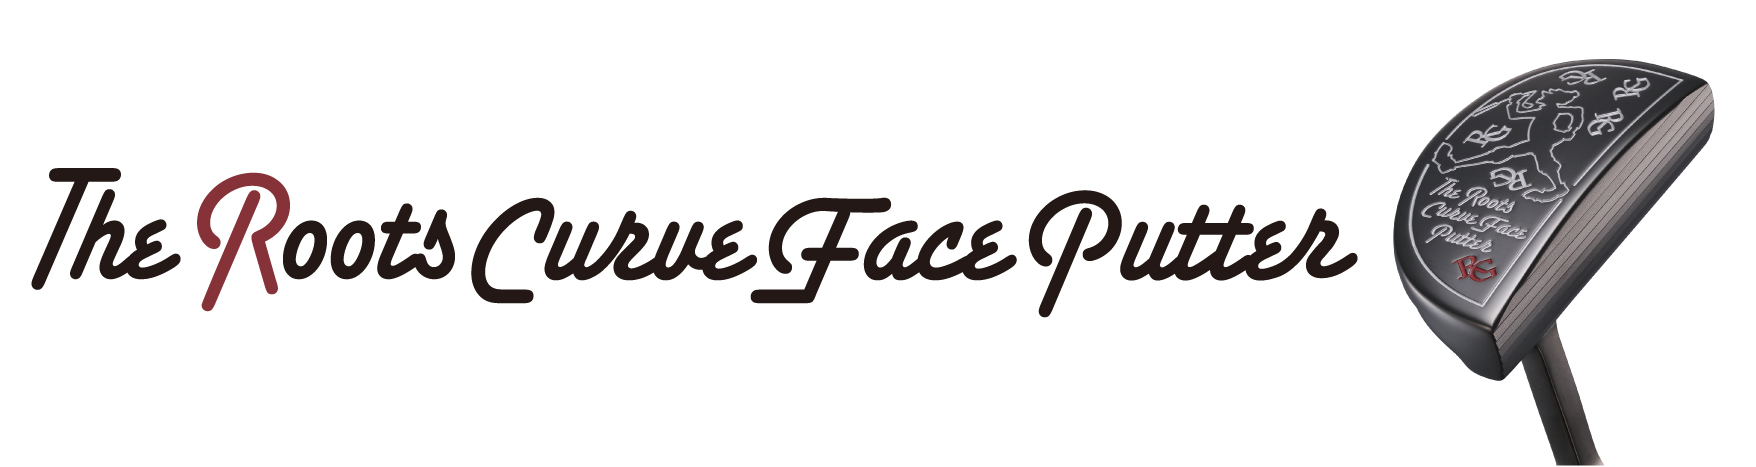 The Roots Curve Face Putter クラブ選び